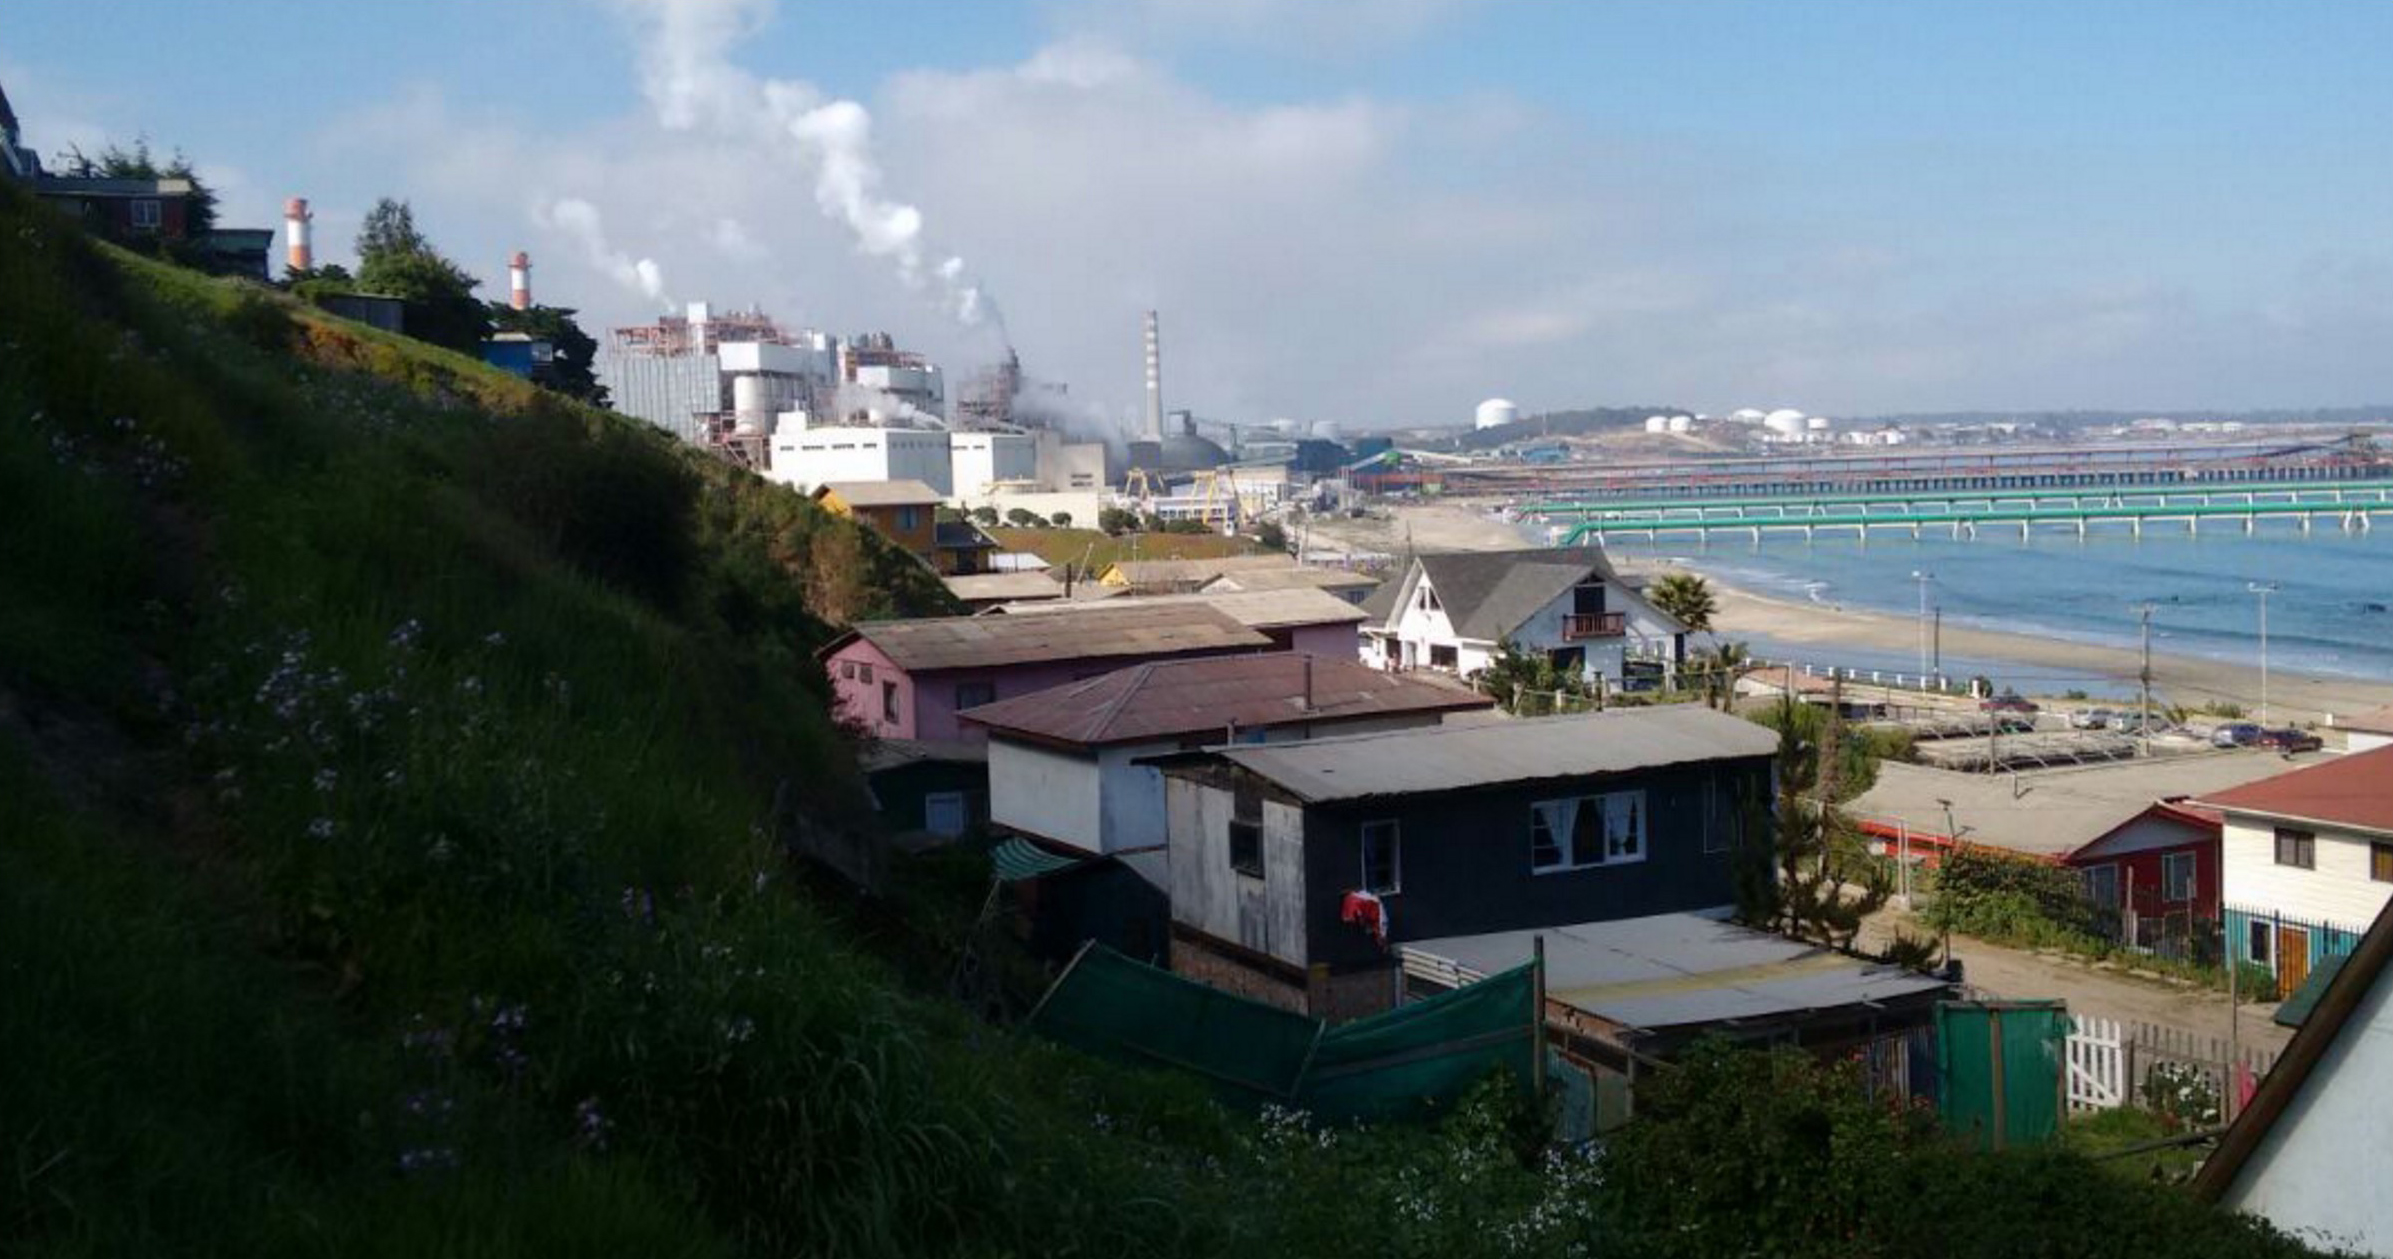 The city of Ventanas is surrounded by industry, and the pollution is in the air, land and water. Photo: Courtesy Carlos Vega.